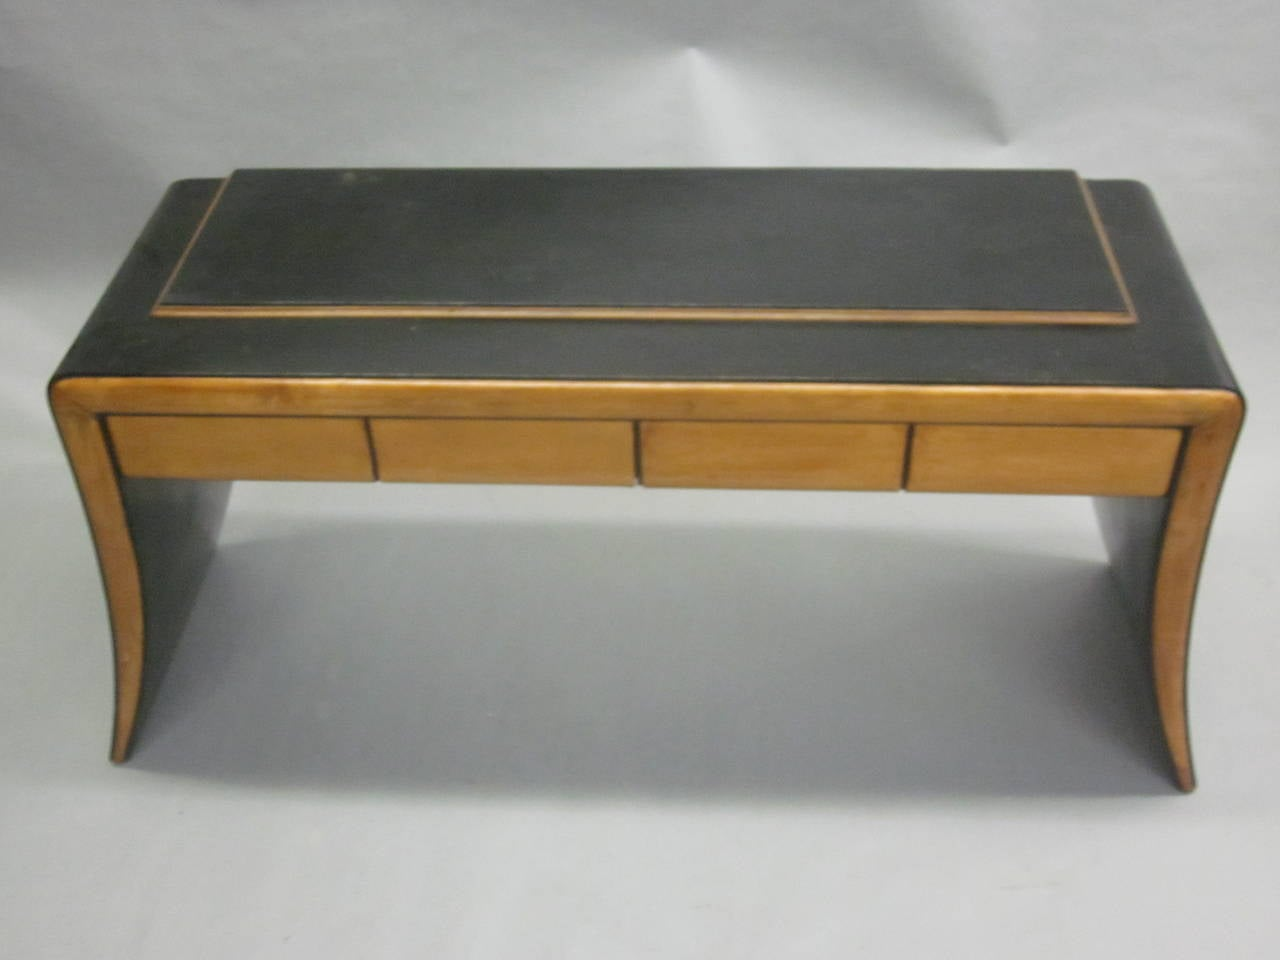 Italian Mid-Century Modern Neoclassical Vanity / Sofa Table by Paolo Buffa, 1930 2